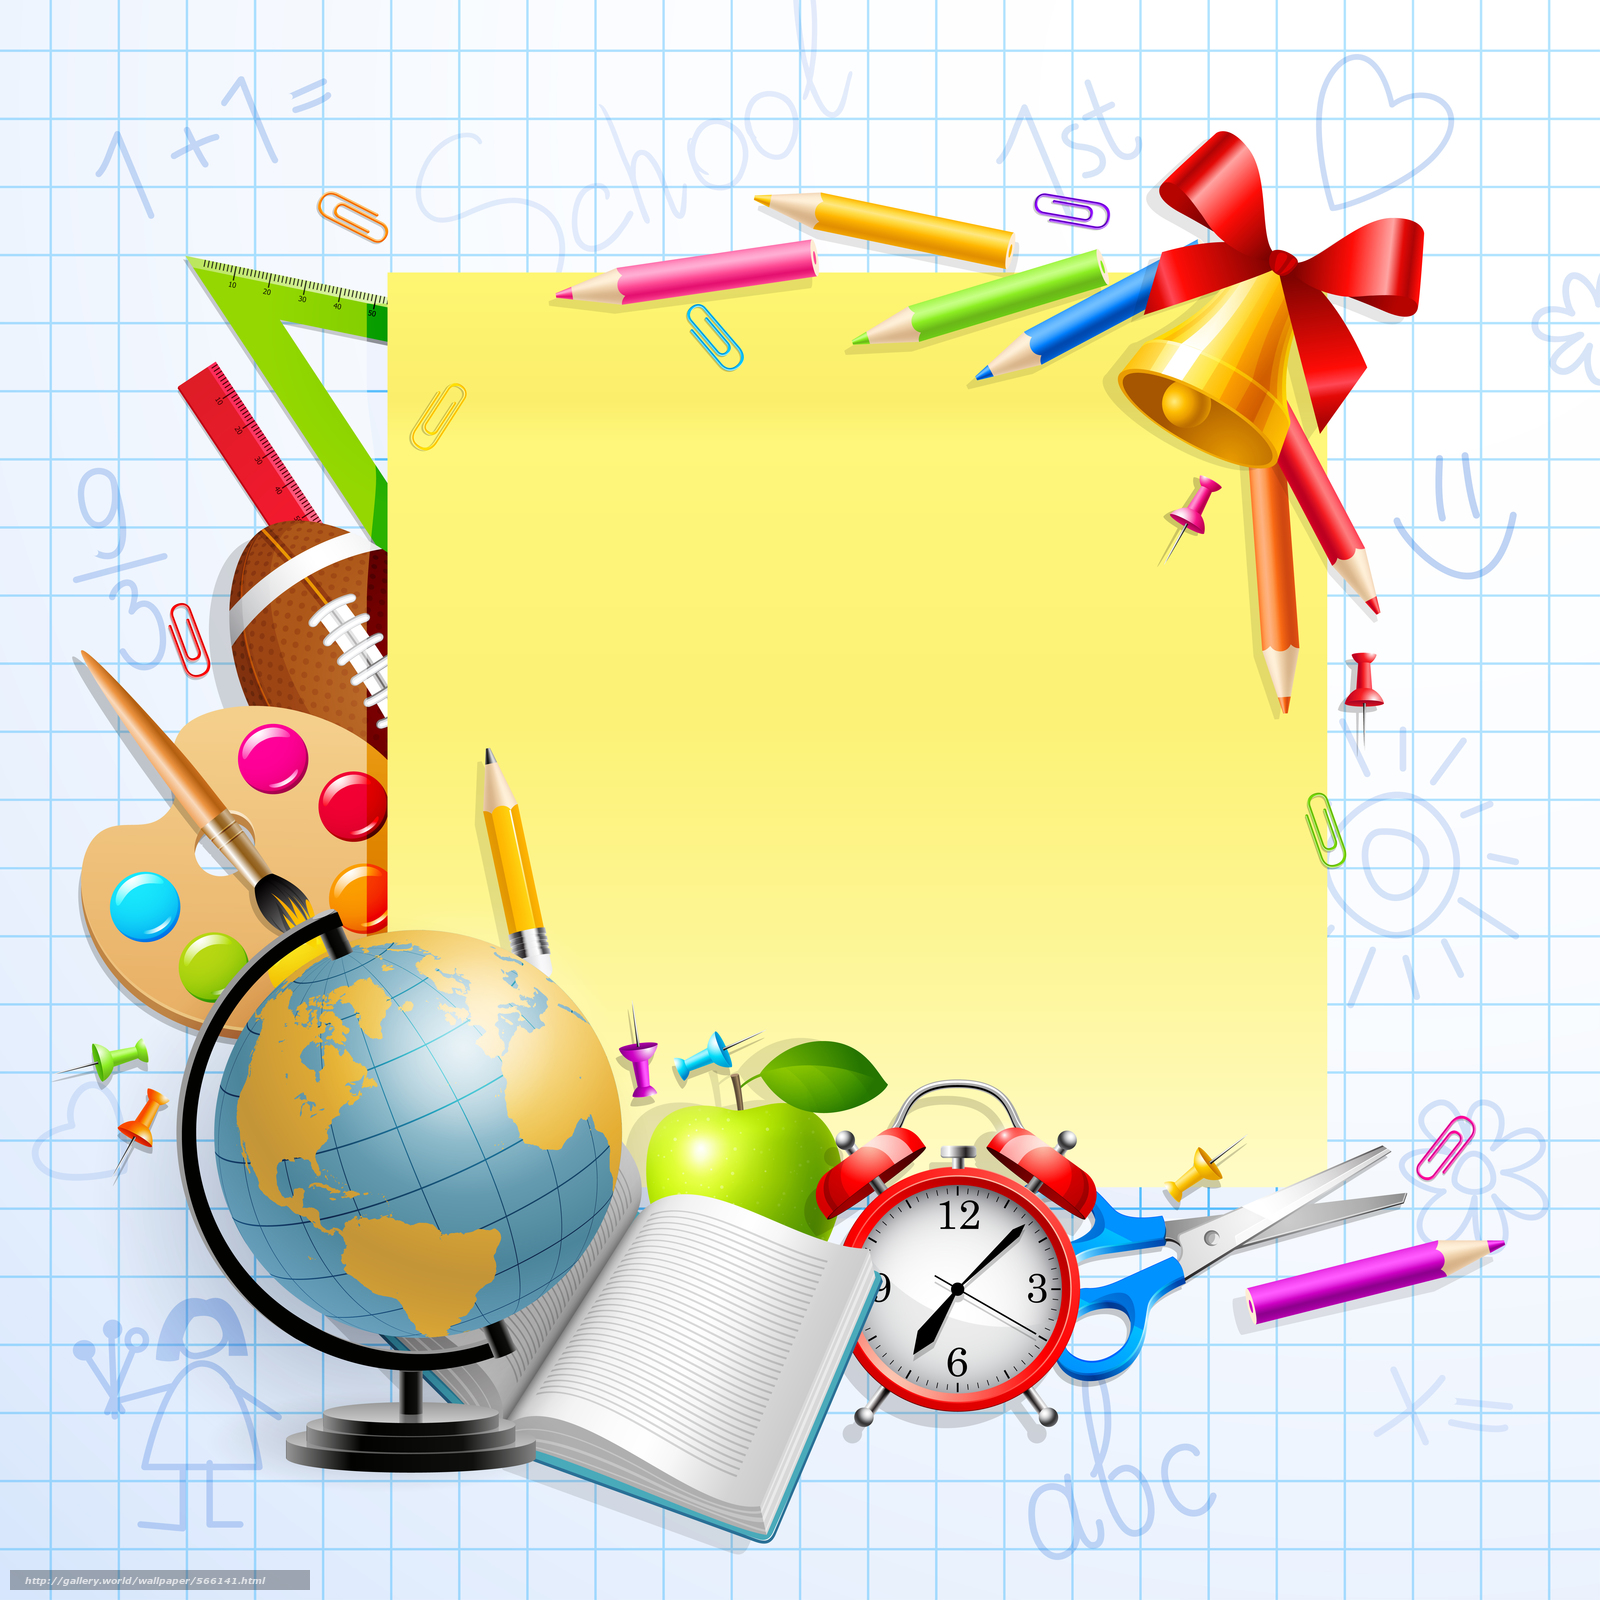 "download wallpaper stationery schedule back to school training aids free desktop wallpaper in the resolution 7087x7087 picture a""–566141"